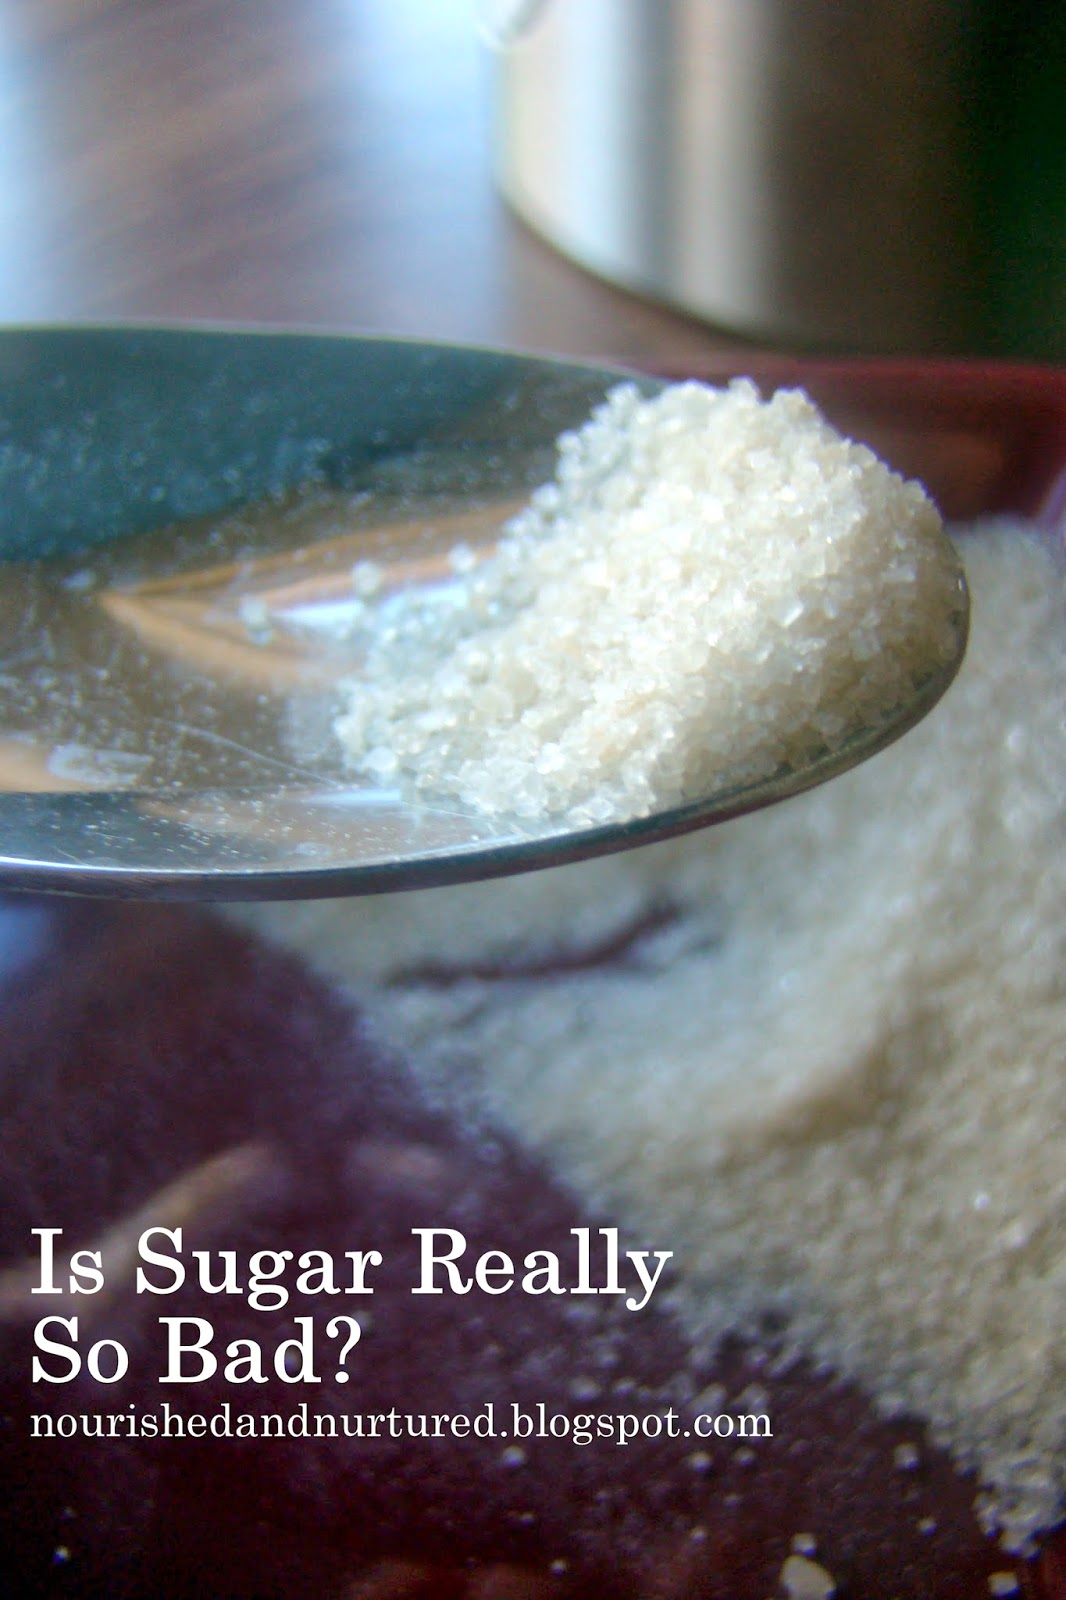 How bad is really sugar pictures